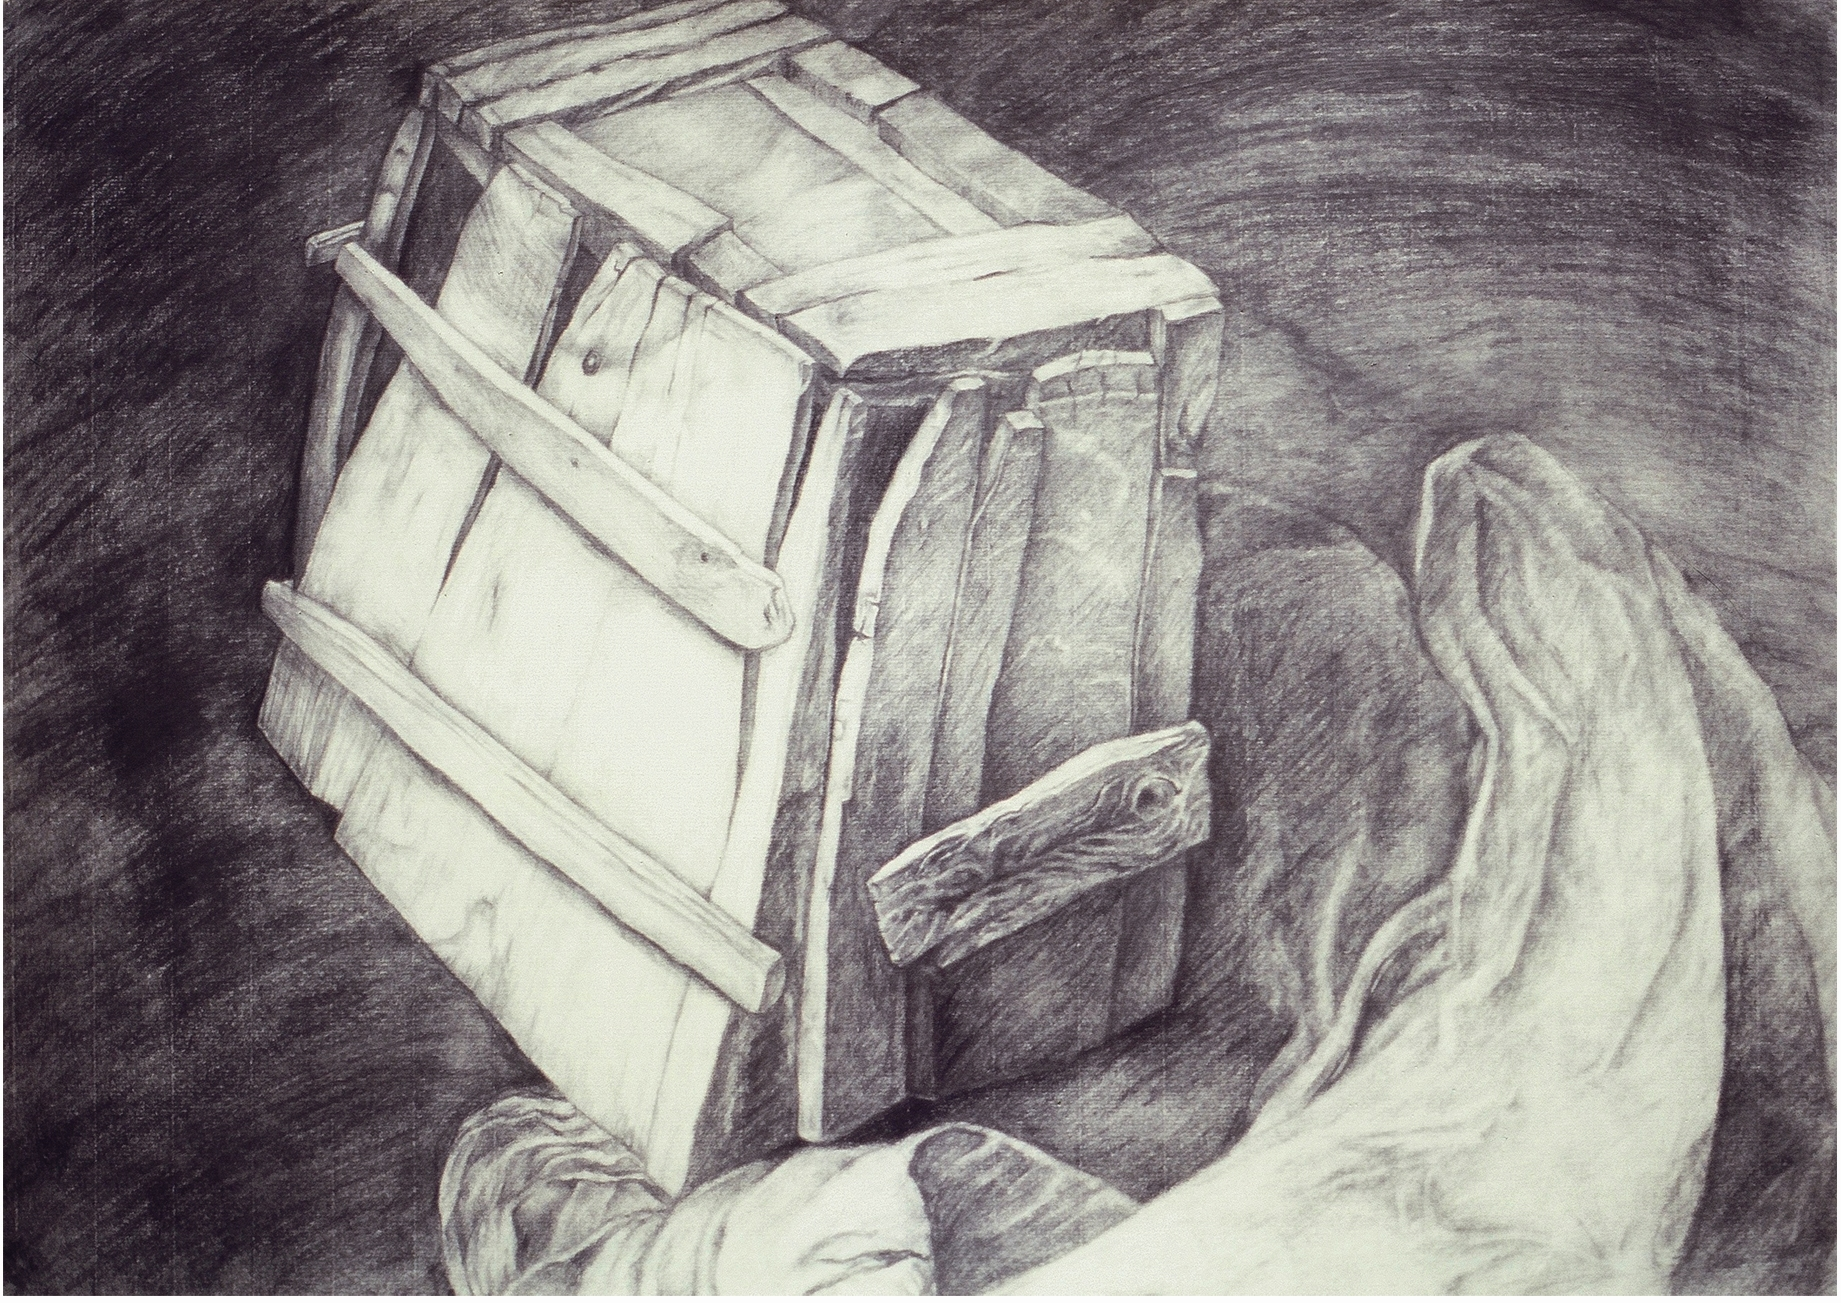 BOX IN HAND - Pencil Sketch